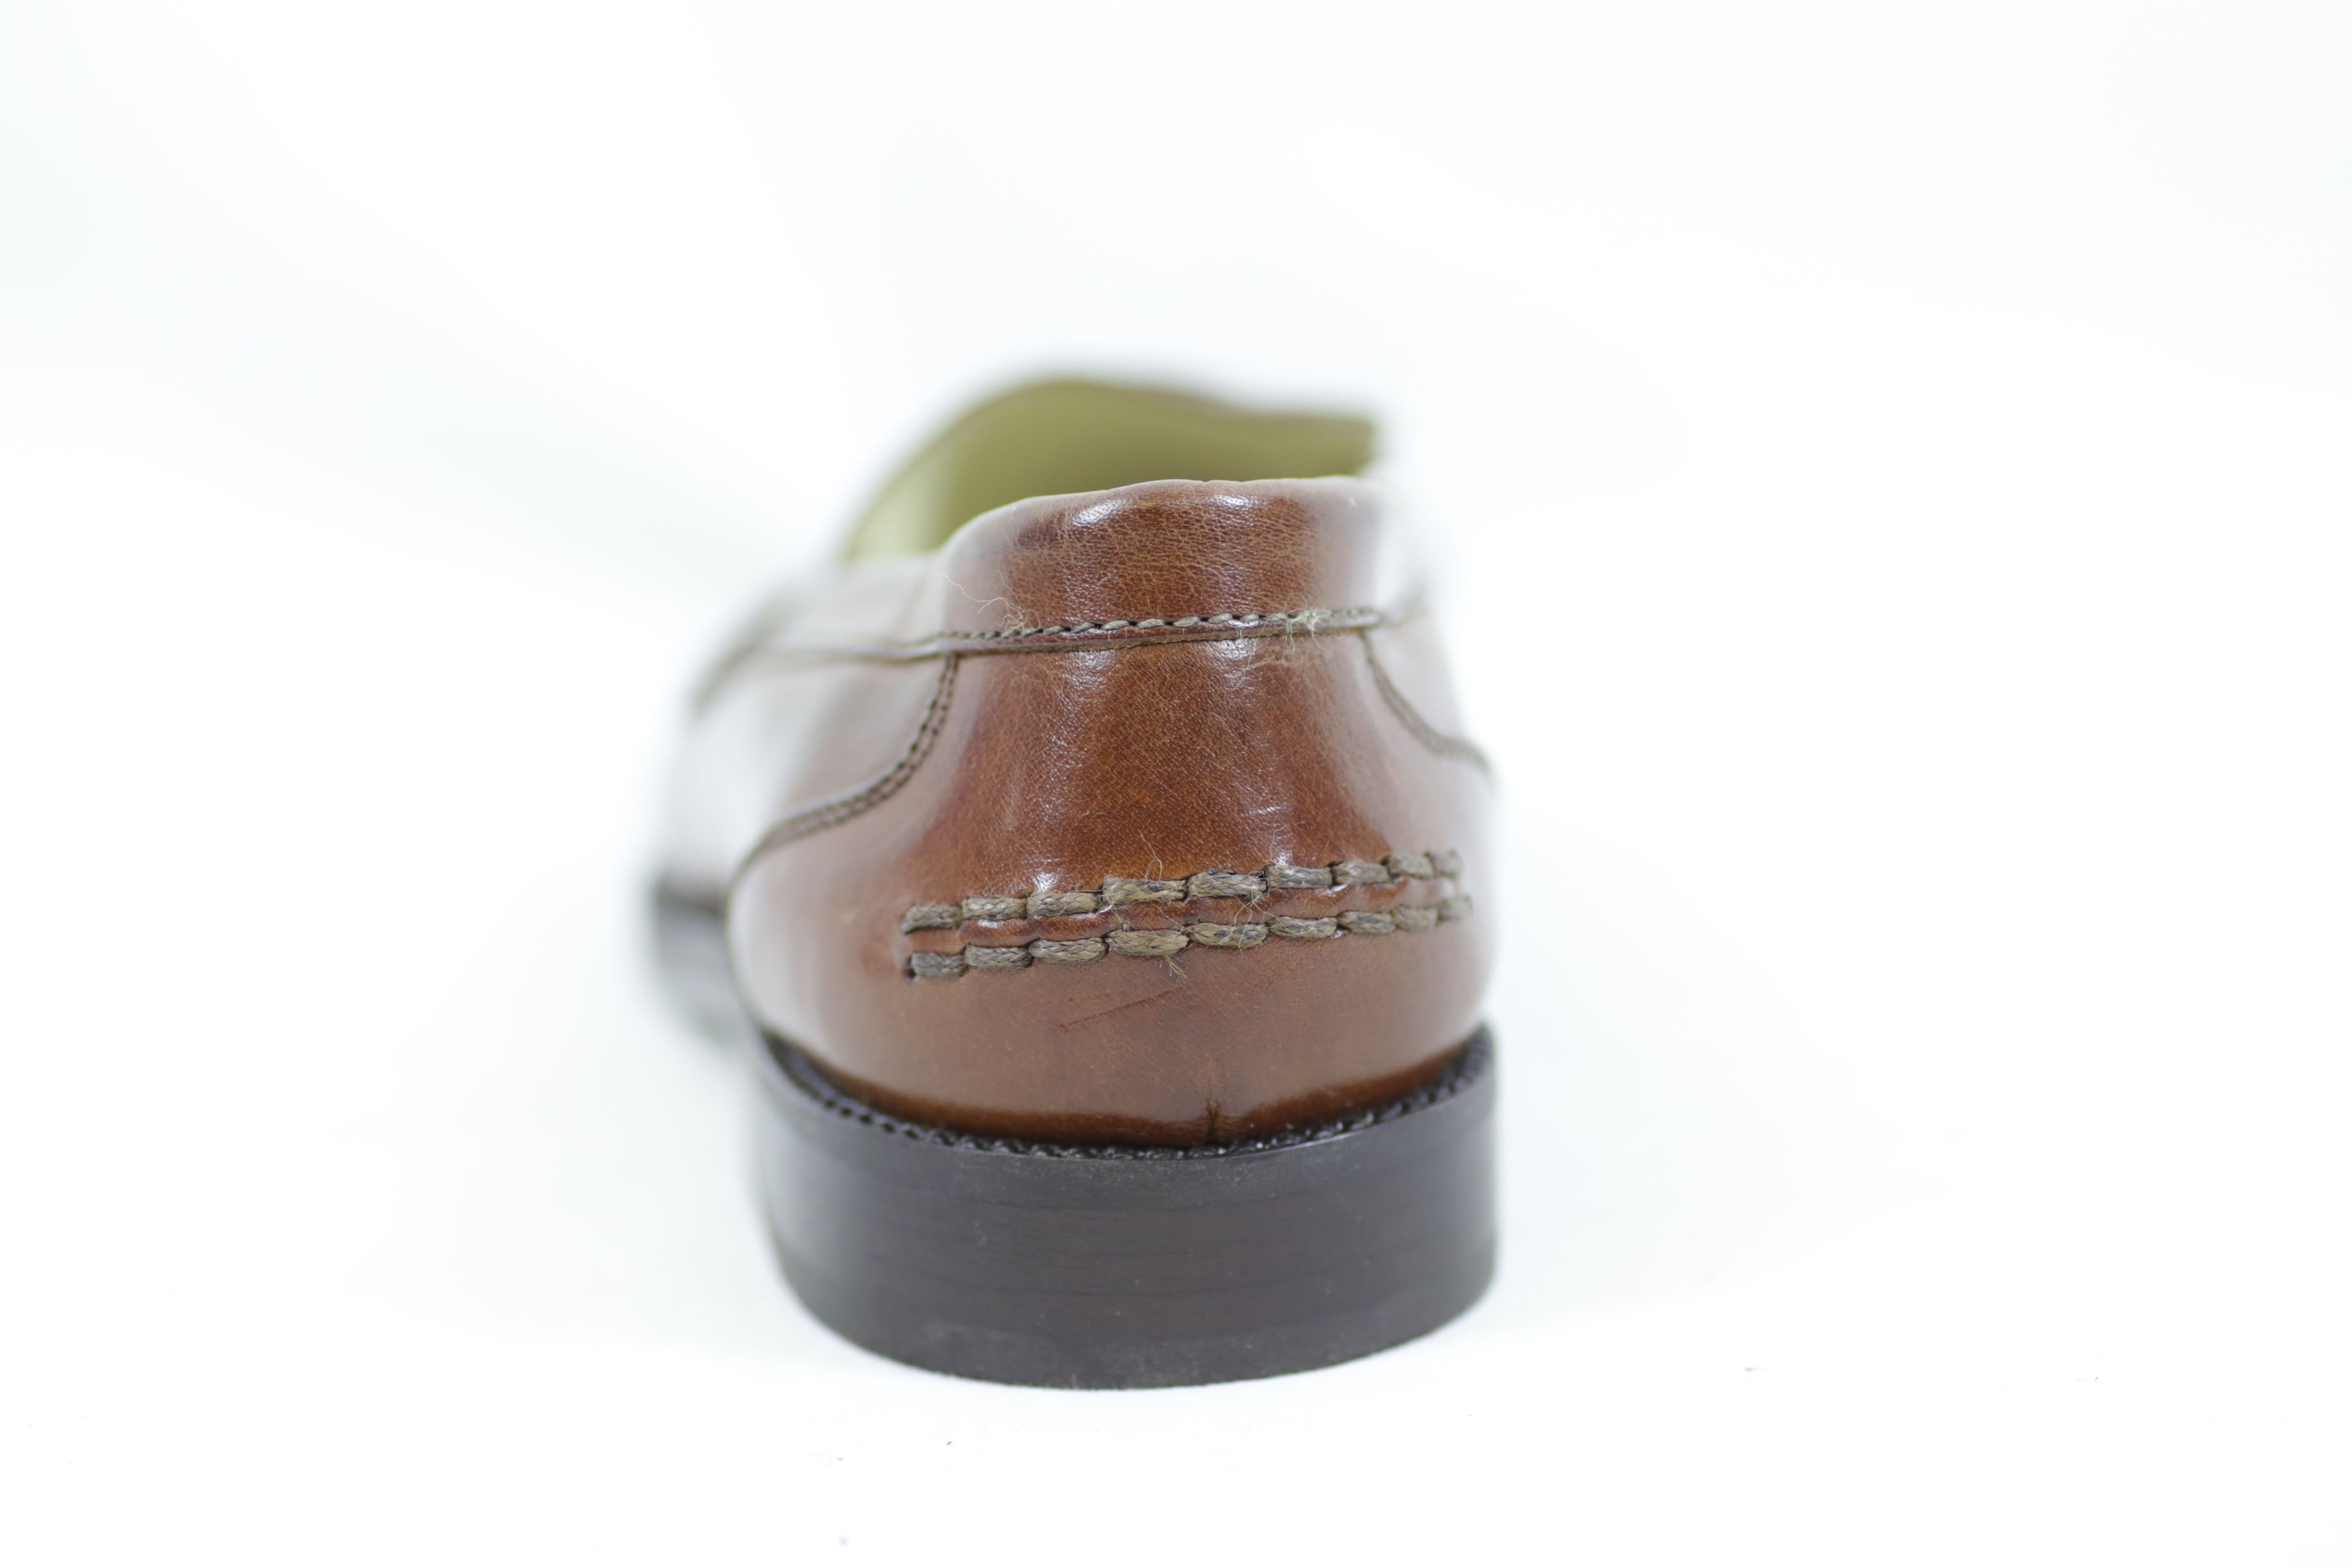 Bally Brim Classic Mid Brown Leather Shoes / Loafers - Size EU 36.5 UK 3.5 Thumbnail 4